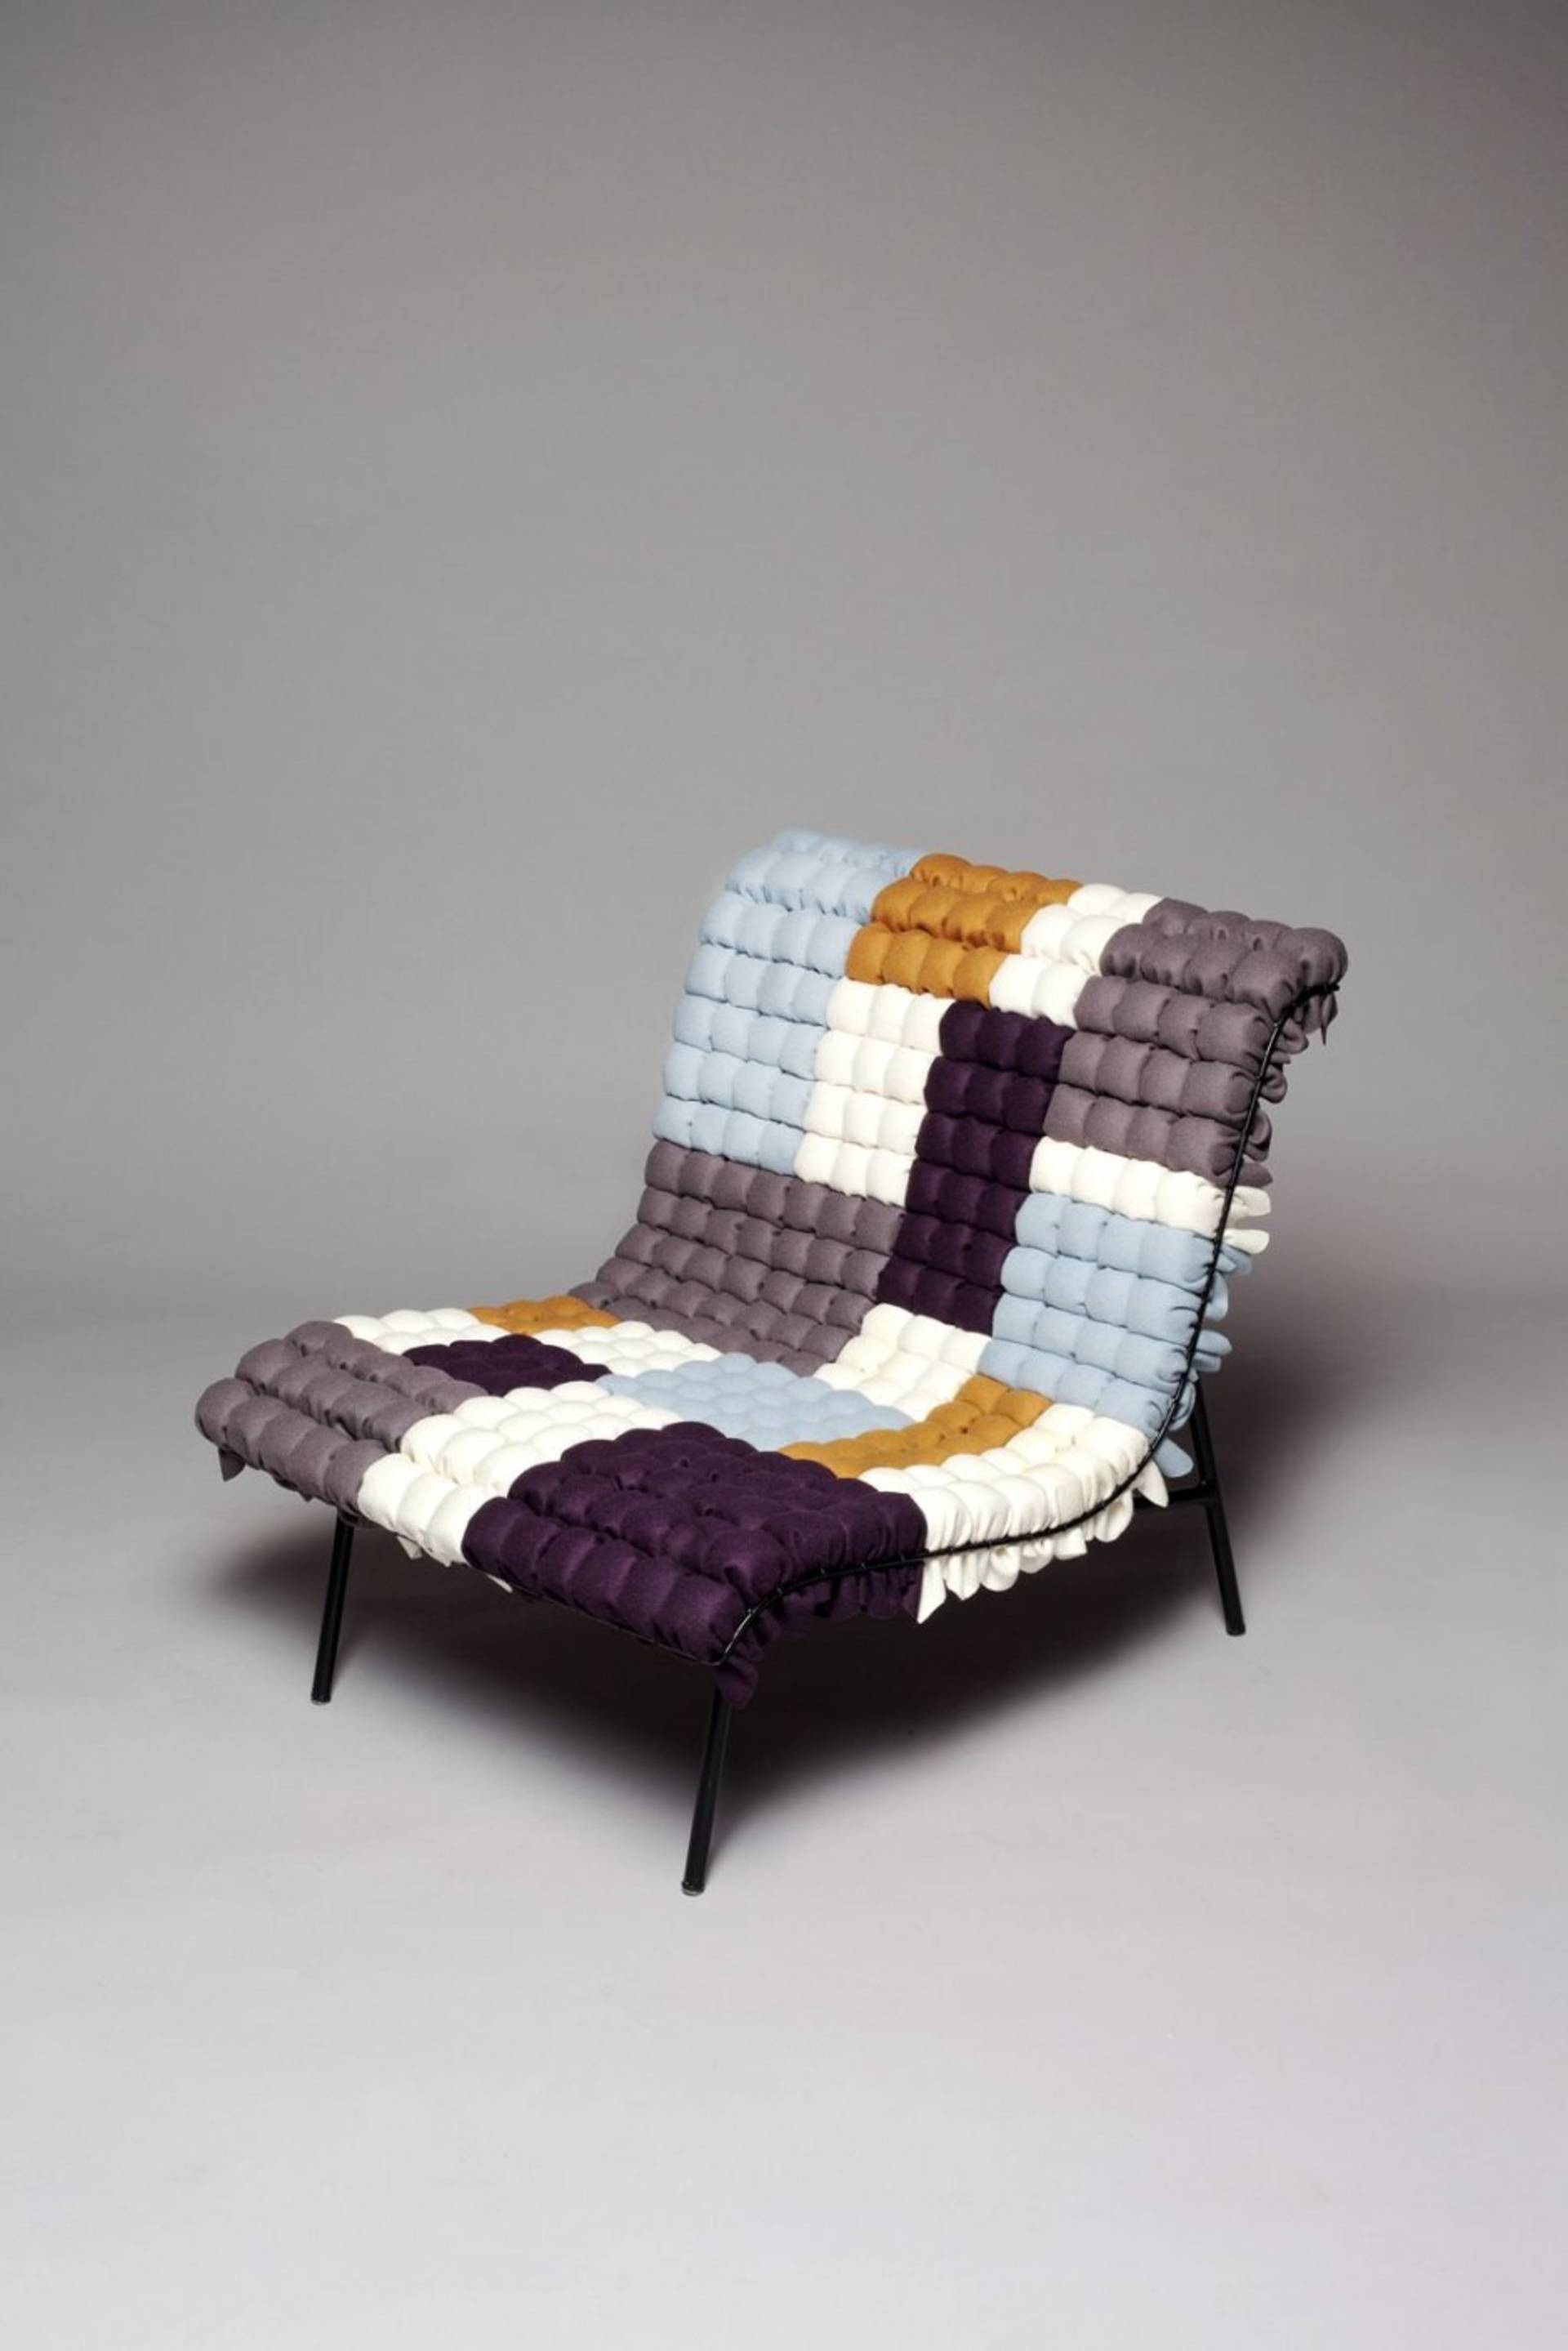 ... The Mosaiik Patchwork Chairs Inspired By Corncobs From Annika Goransson  ...